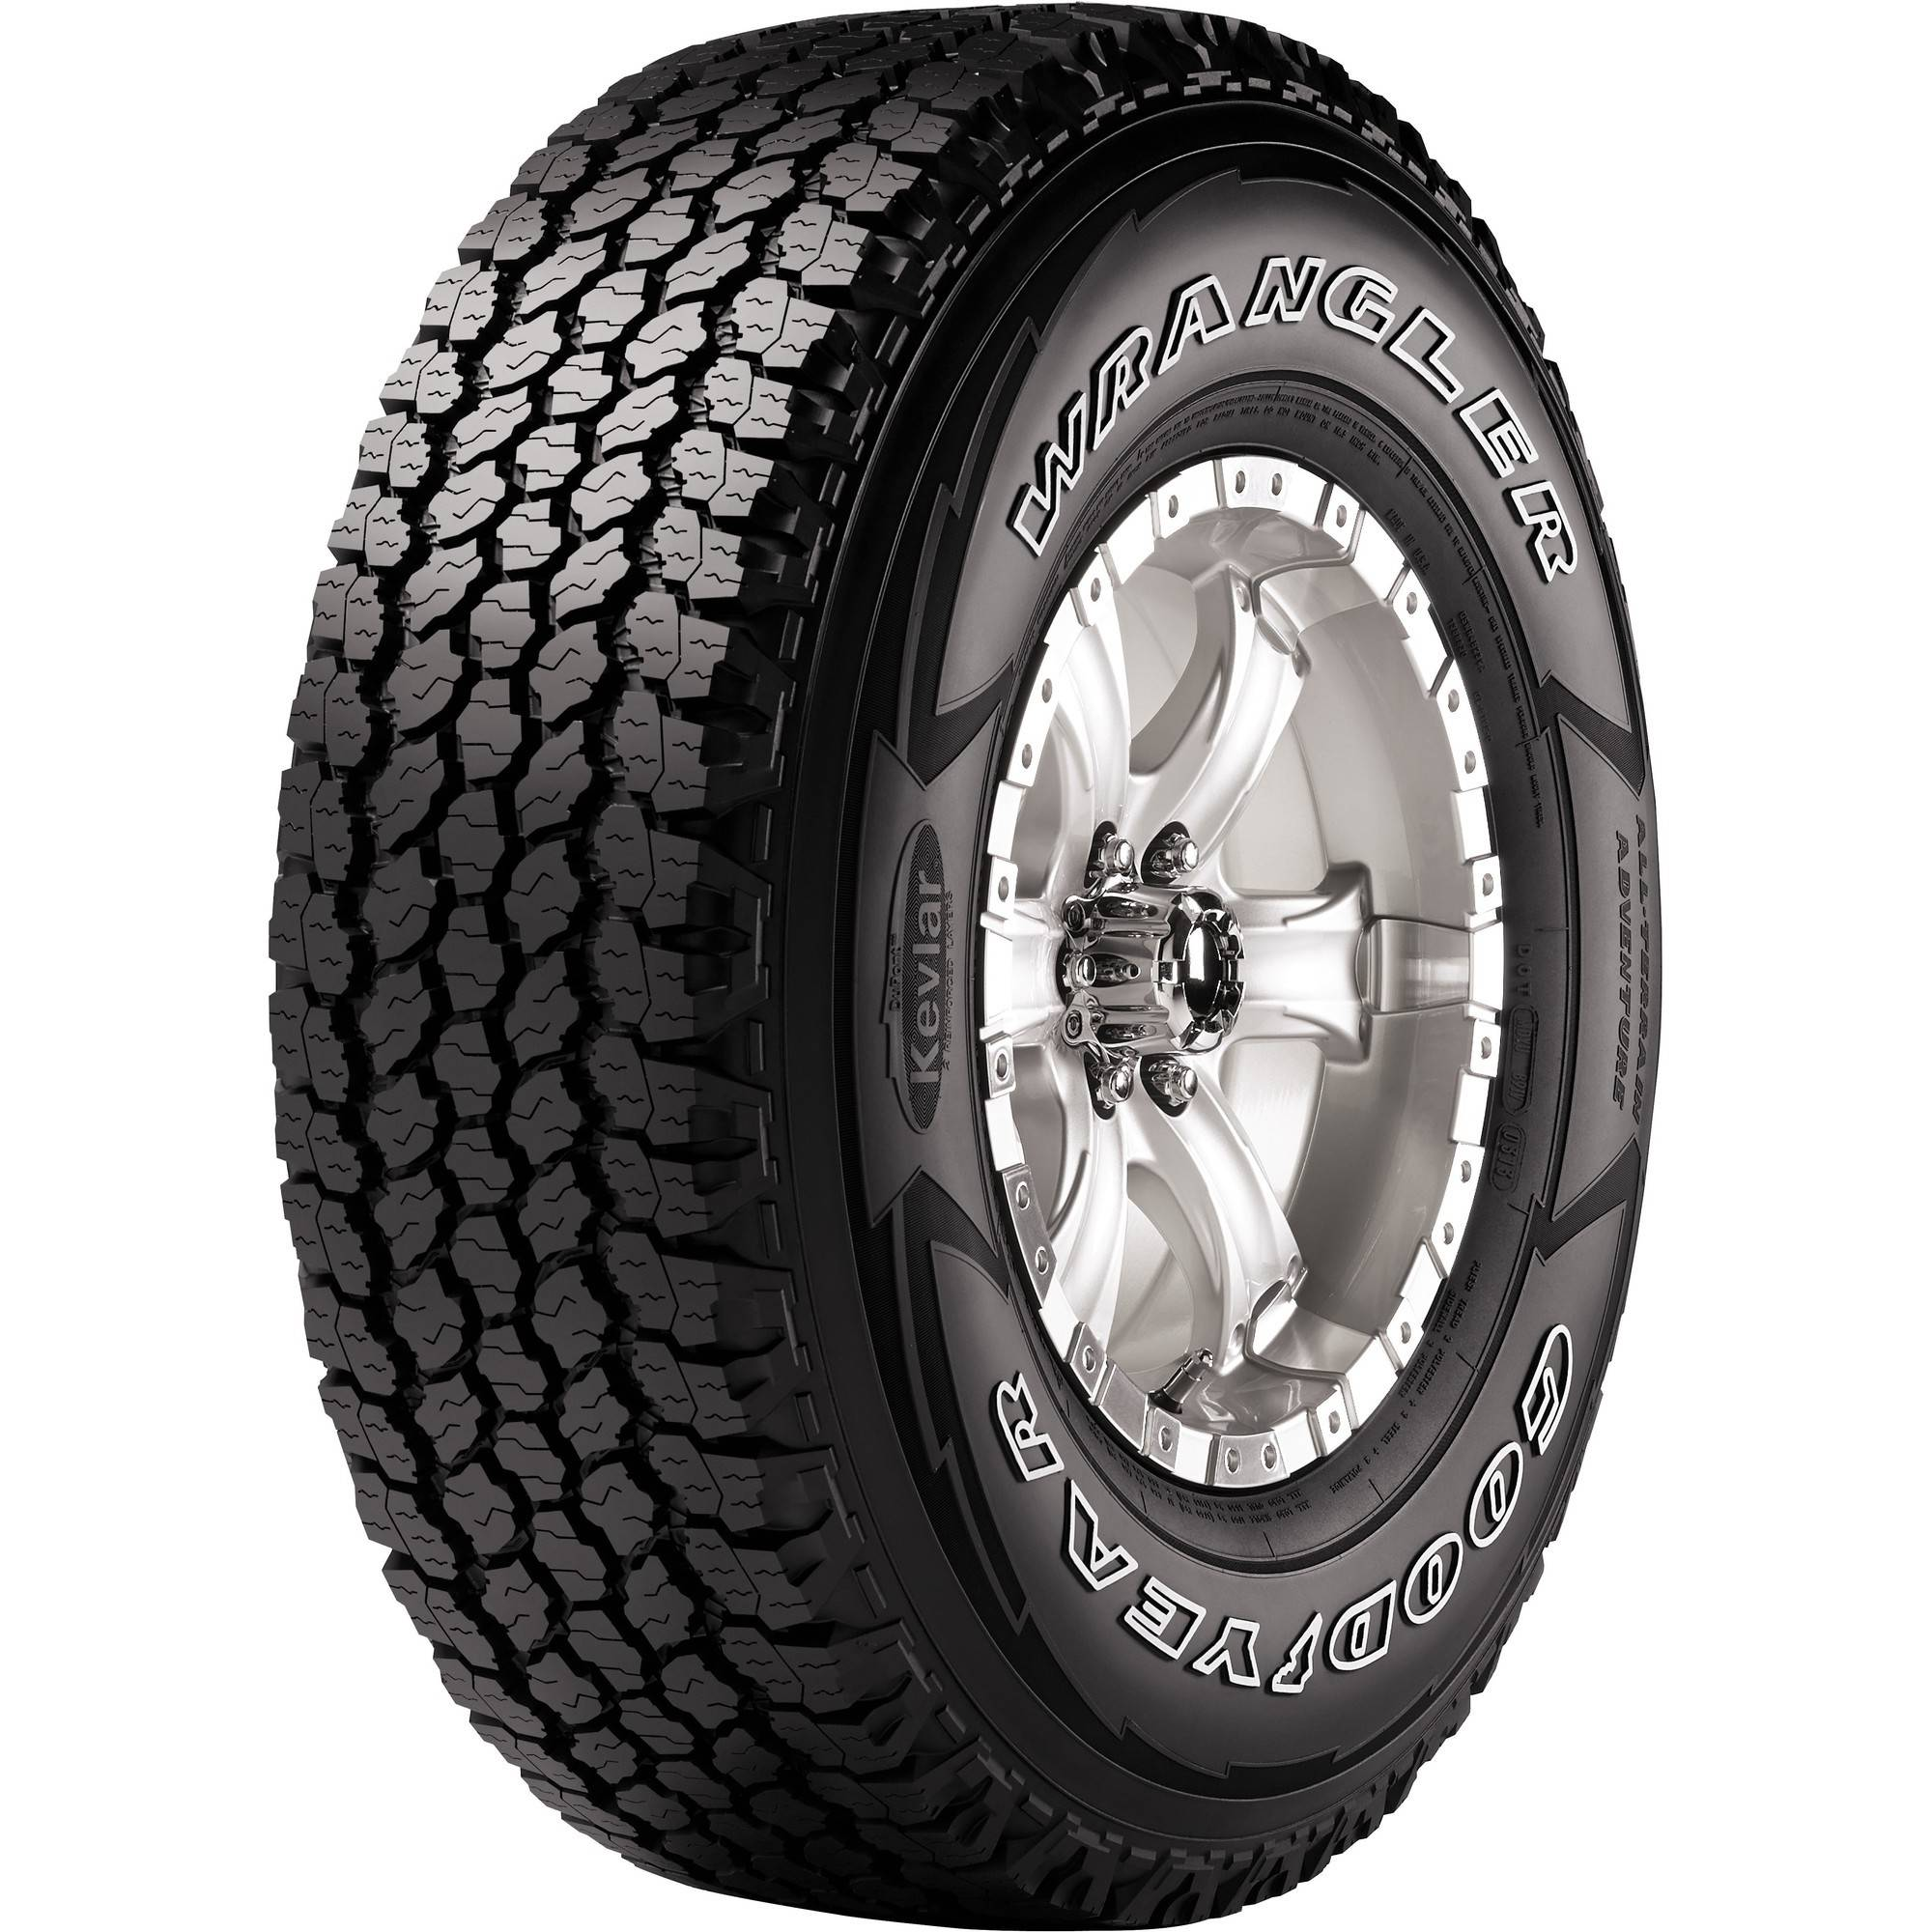 Goodyear Wrangler All-Terrain Adventure 255/70R16/SL Tire 111T